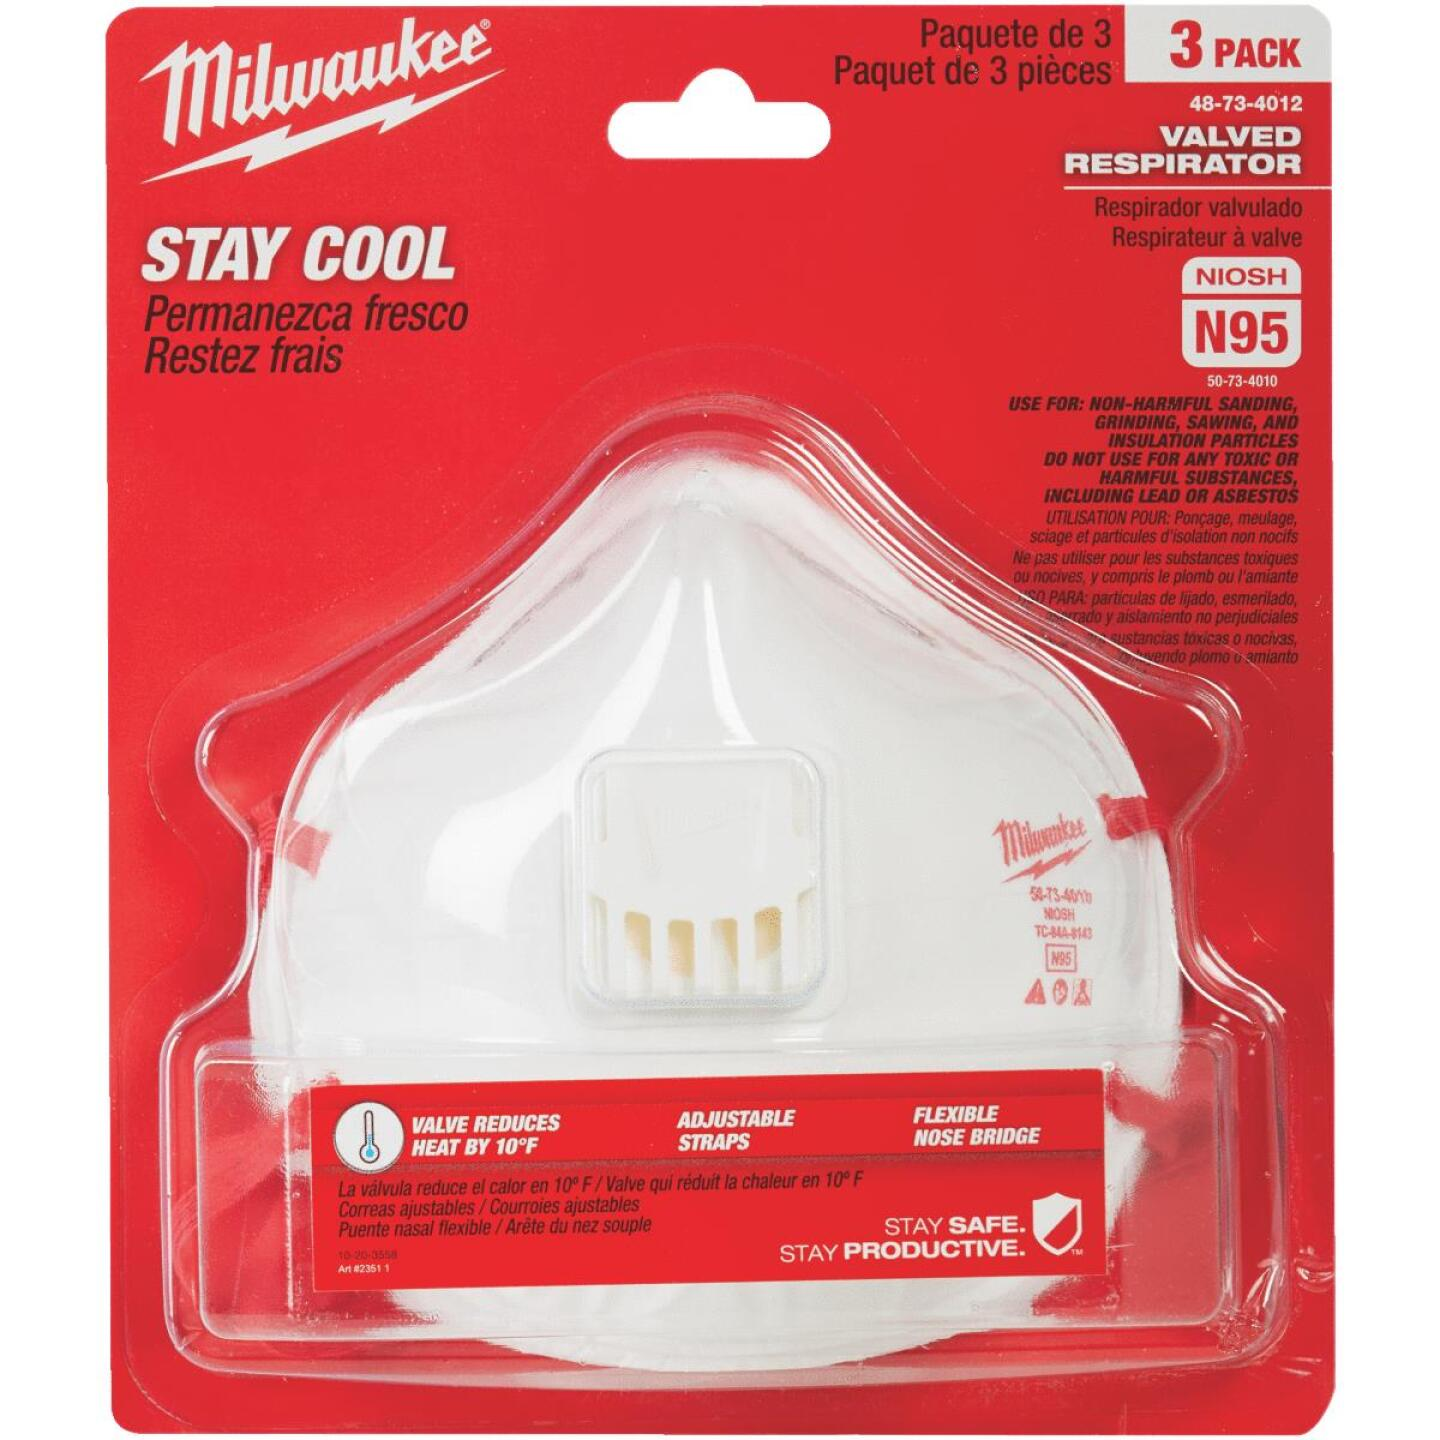 Best - Respirator Disposable 3-pack Milwaukee It Do Valved N95